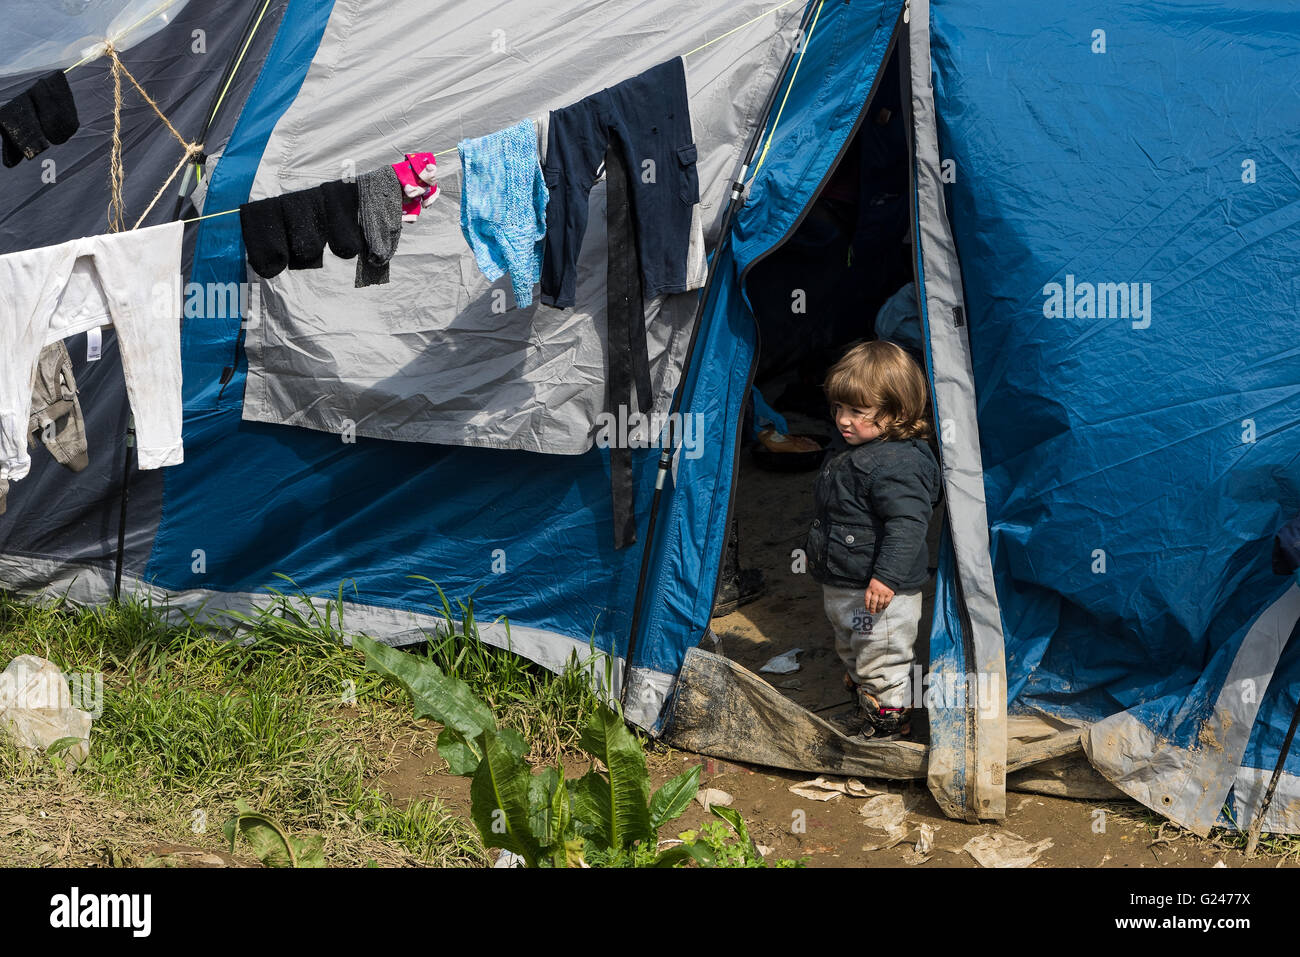 A little girl stands by her tent on March 17, 2015 in the refugee camp of Idomeni, Greece. - Stock Image